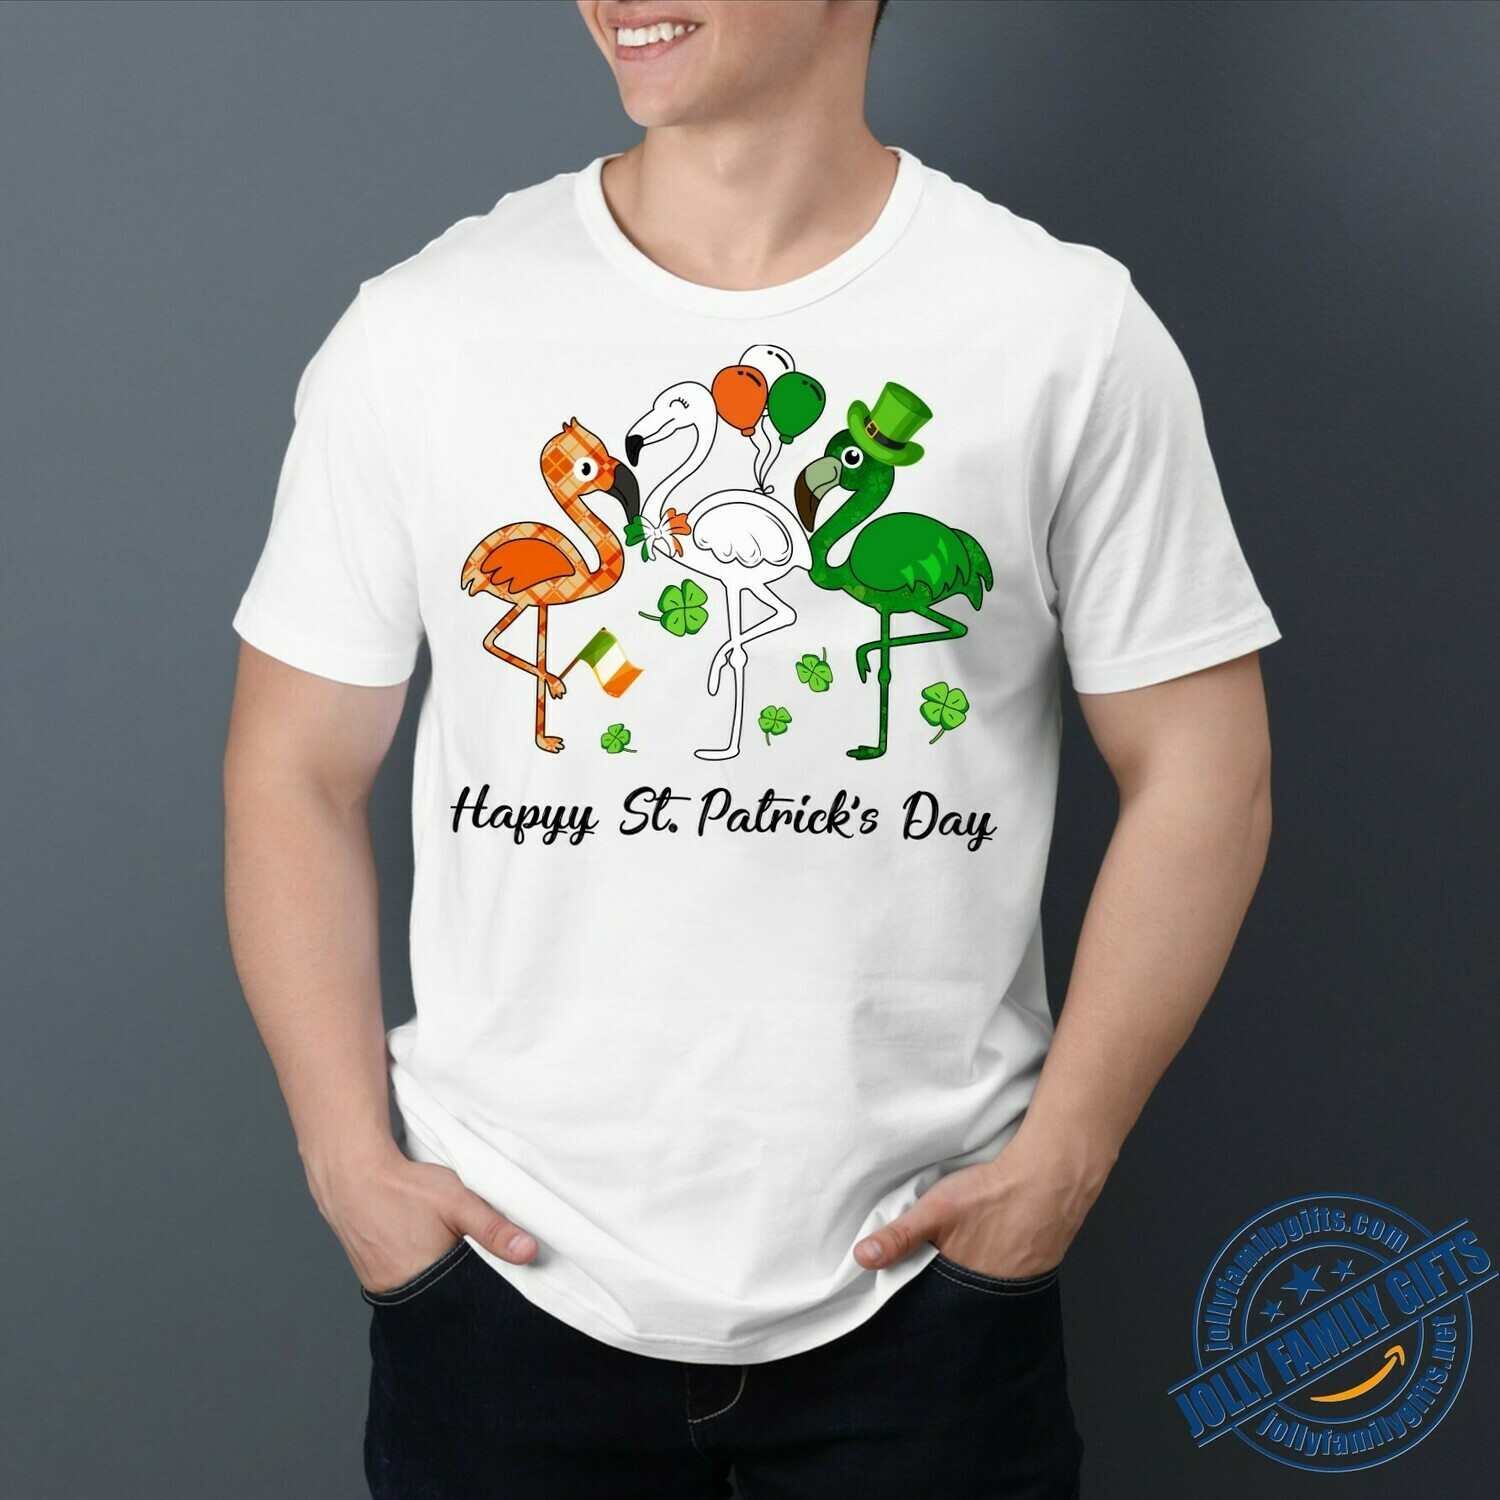 Happy St. Patrick's Day Multicolor Flamingos Leprechaun A wee bit Irish today at Large  Unisex T-Shirt Hoodie Sweatshirt Sweater Plus Size for Ladies Women Men Kids Youth Gifts Tee Jolly Family Gifts